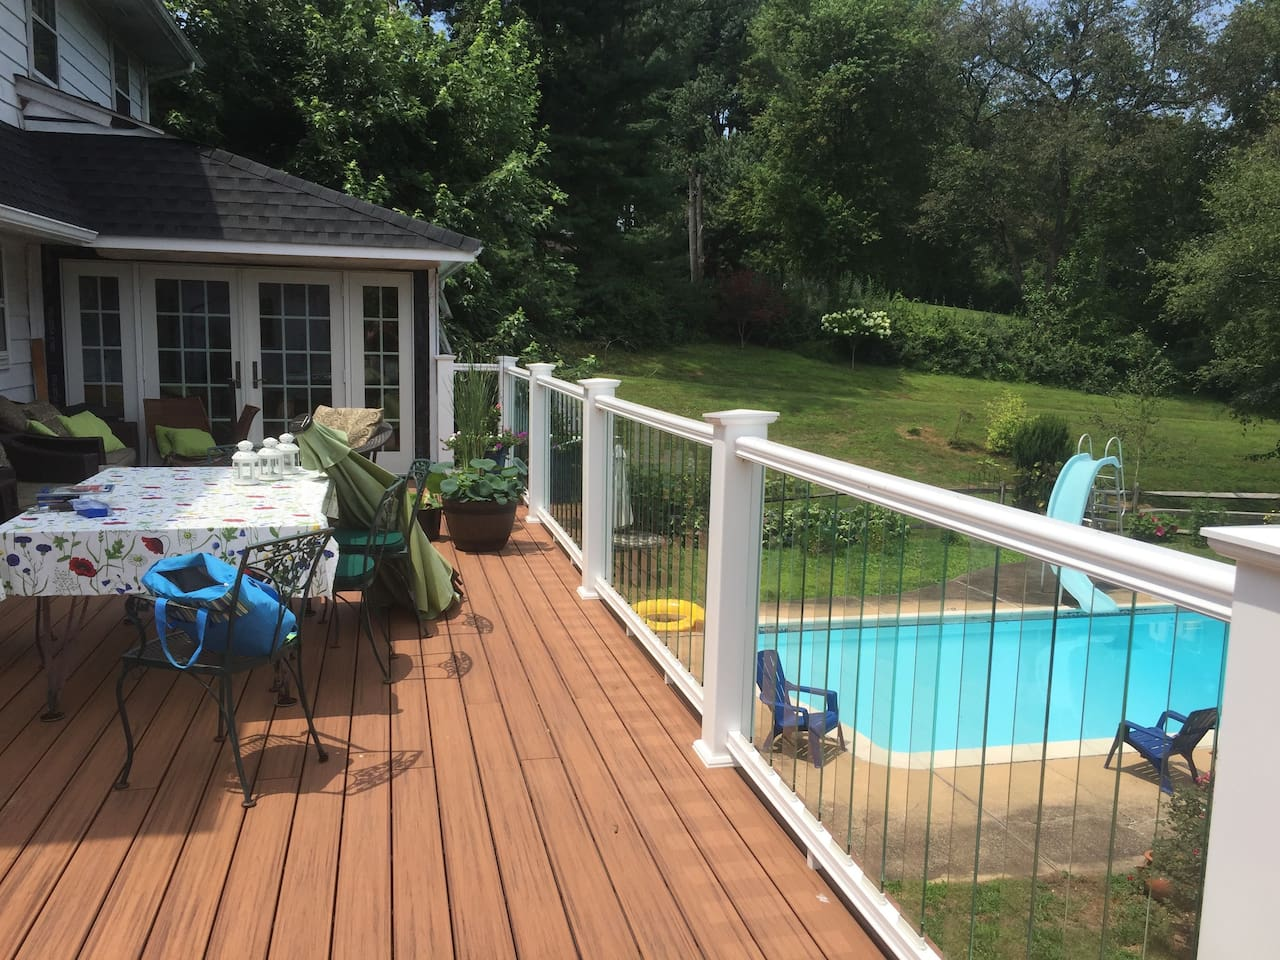 The deck and the pool are lovely places to hang out in the summer. The deck also has two gas heaters which makes it quite cosy in the fall and spring.